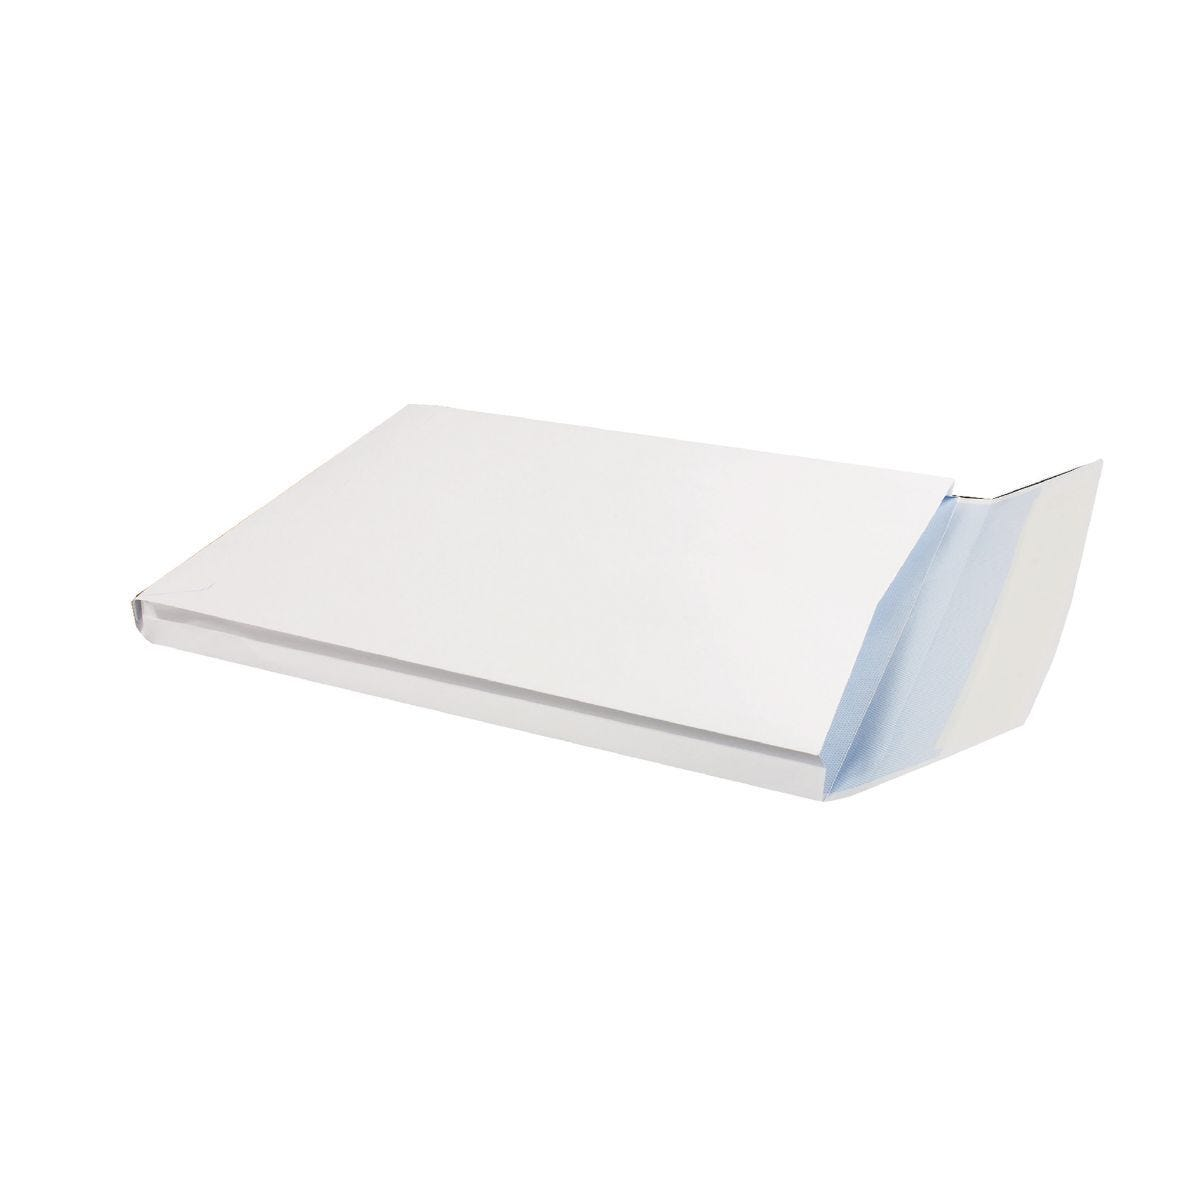 Q-Connect Gusset Envelope Window C4 120gsm Pack of 125 White